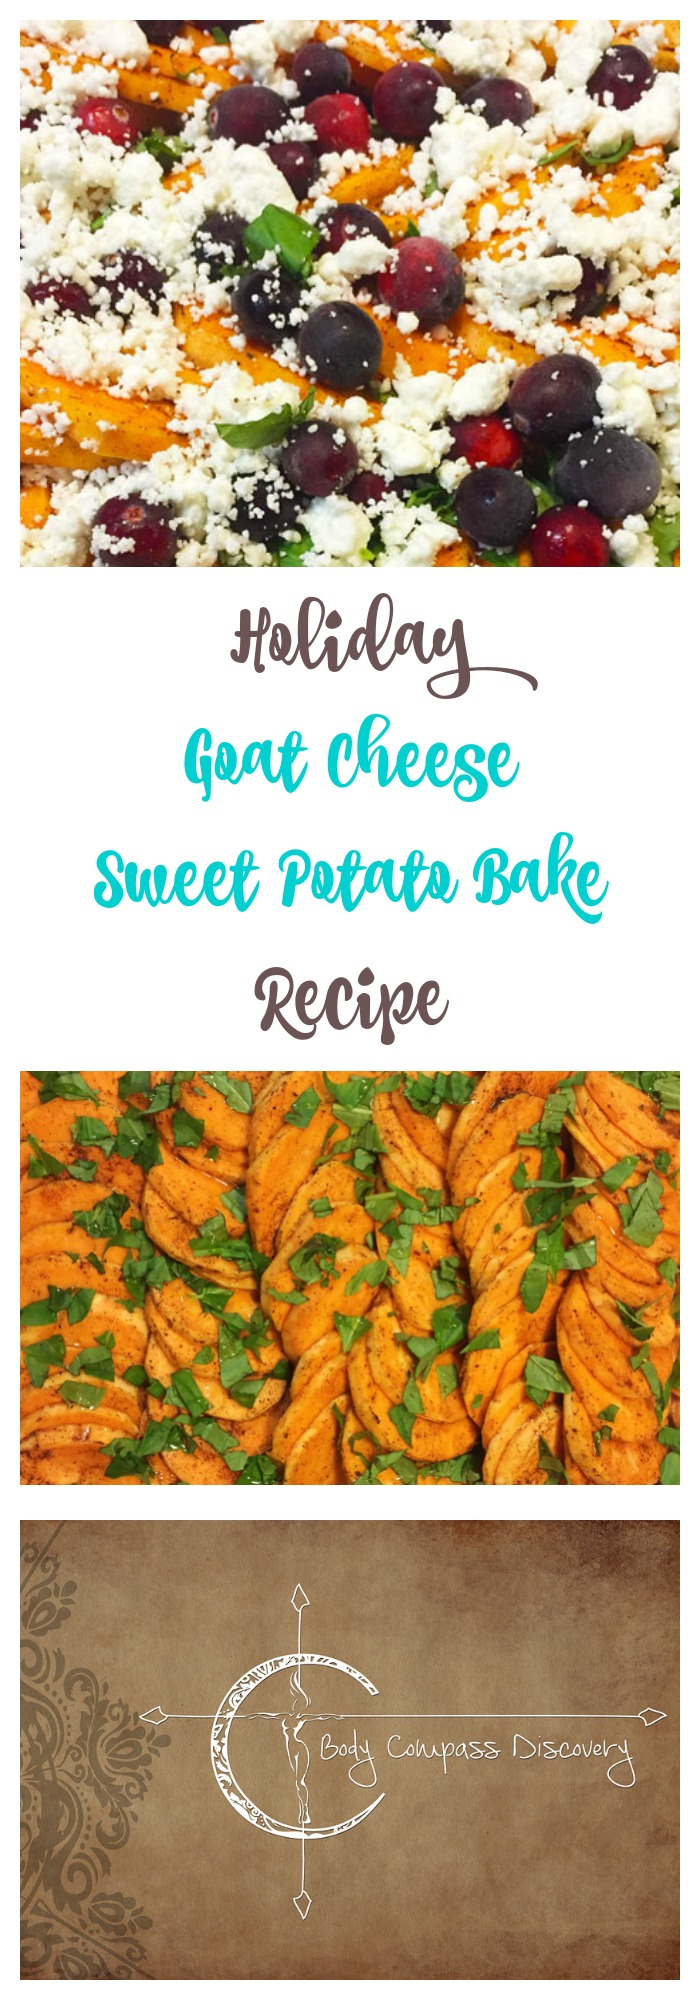 Holiday Sweet Potato bake recipe